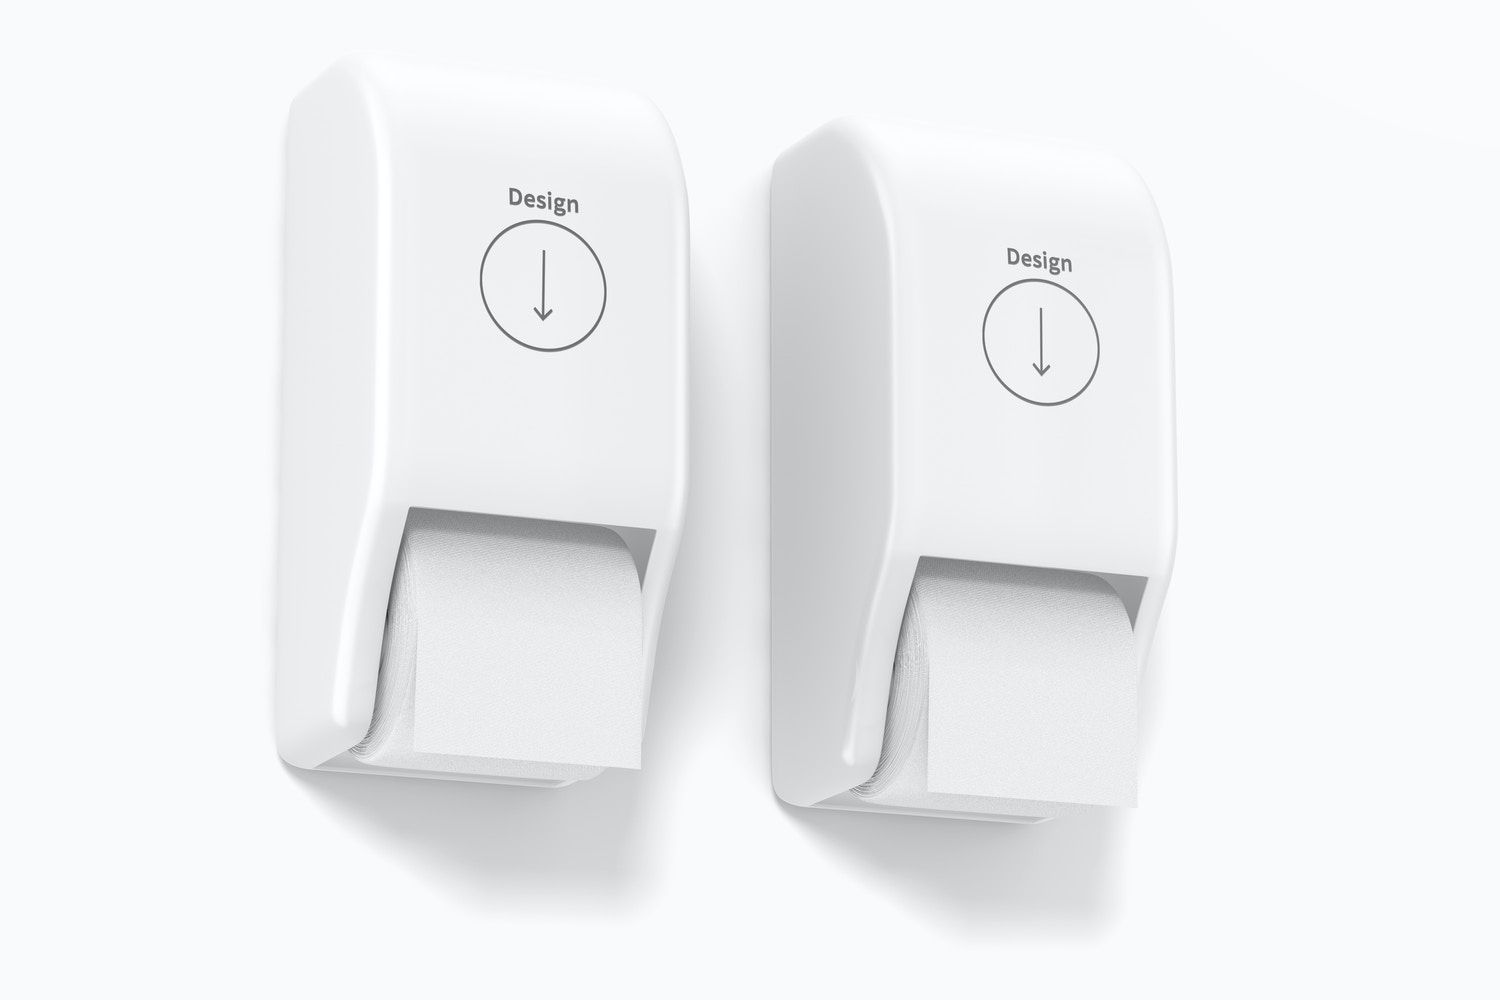 Toilet Paper Holders Mockup, Perspective View